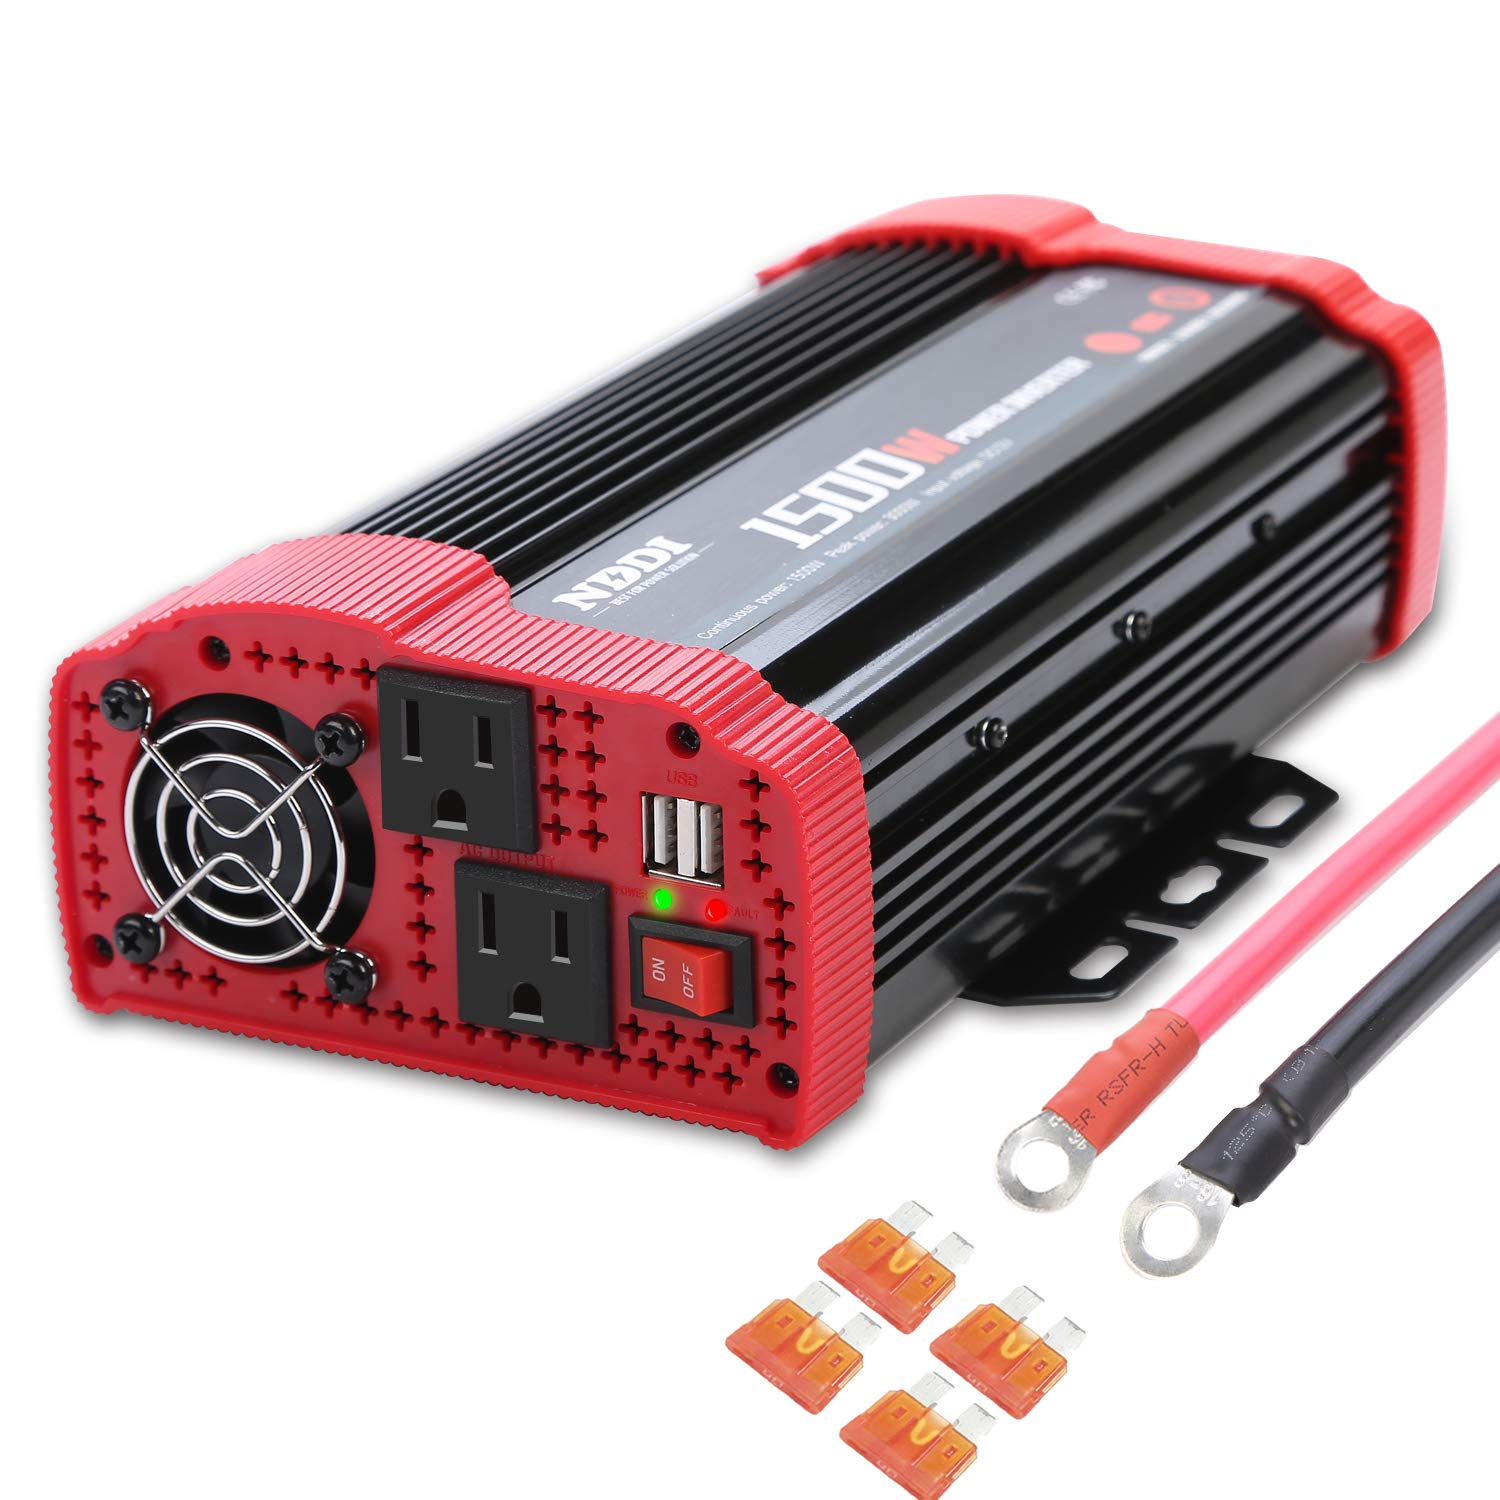 1500W Car Power Inverter, 12V DC to 110V AC Car Converter Charger Adapter with Dual 3.1A USB Port and AC Outlets, Quick Charging Inverter for RV, Camping, Emergency, Hurricane Storm Outage